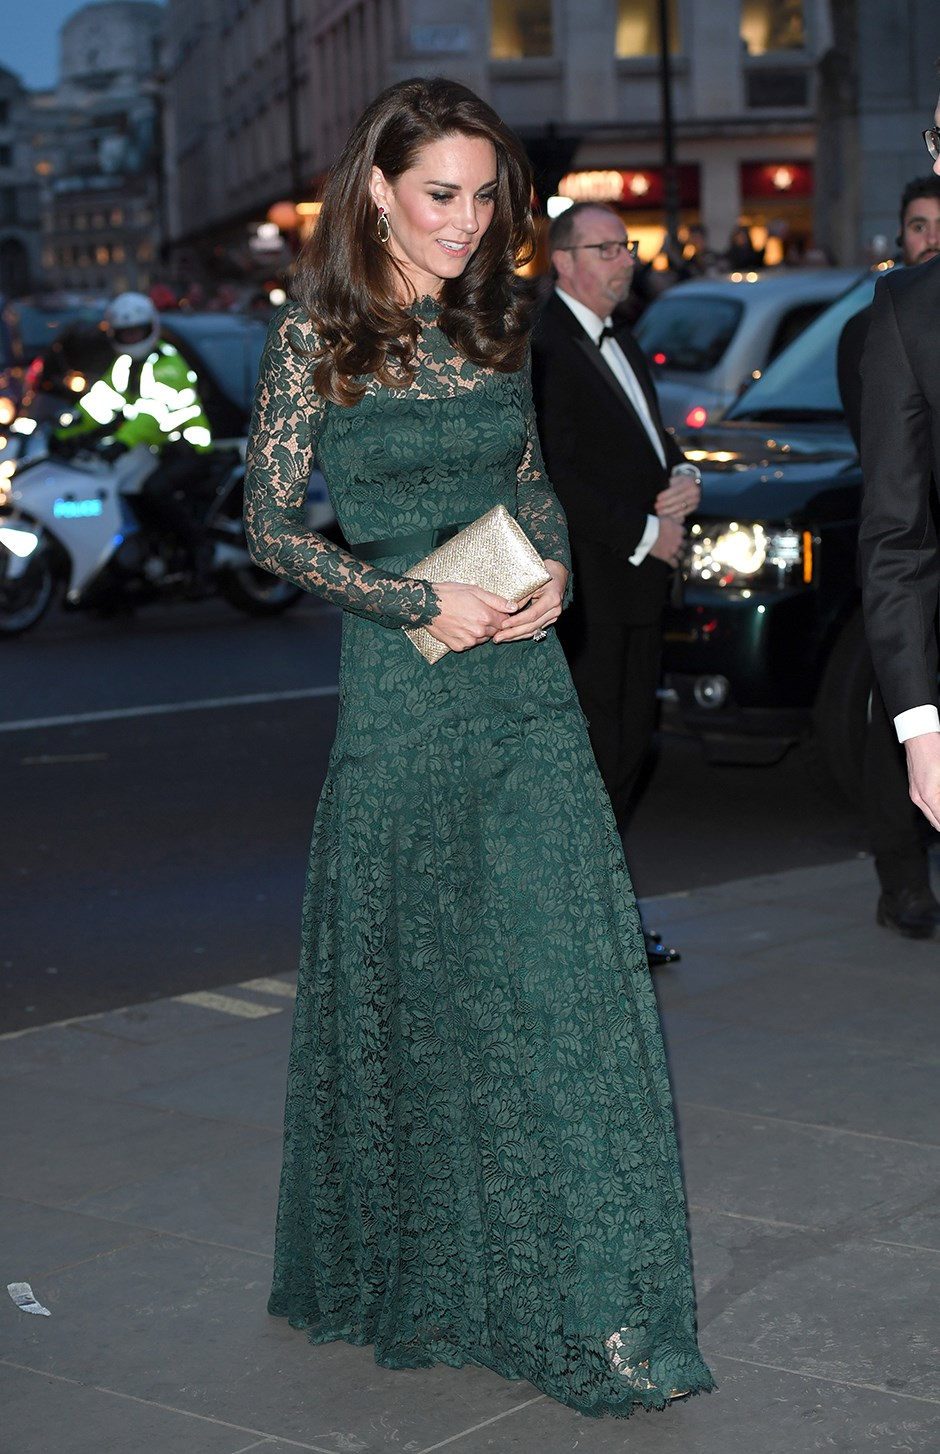 Kate attended an event at London's National Portrait Gallery wearing this forest green Temperley London lace gown.